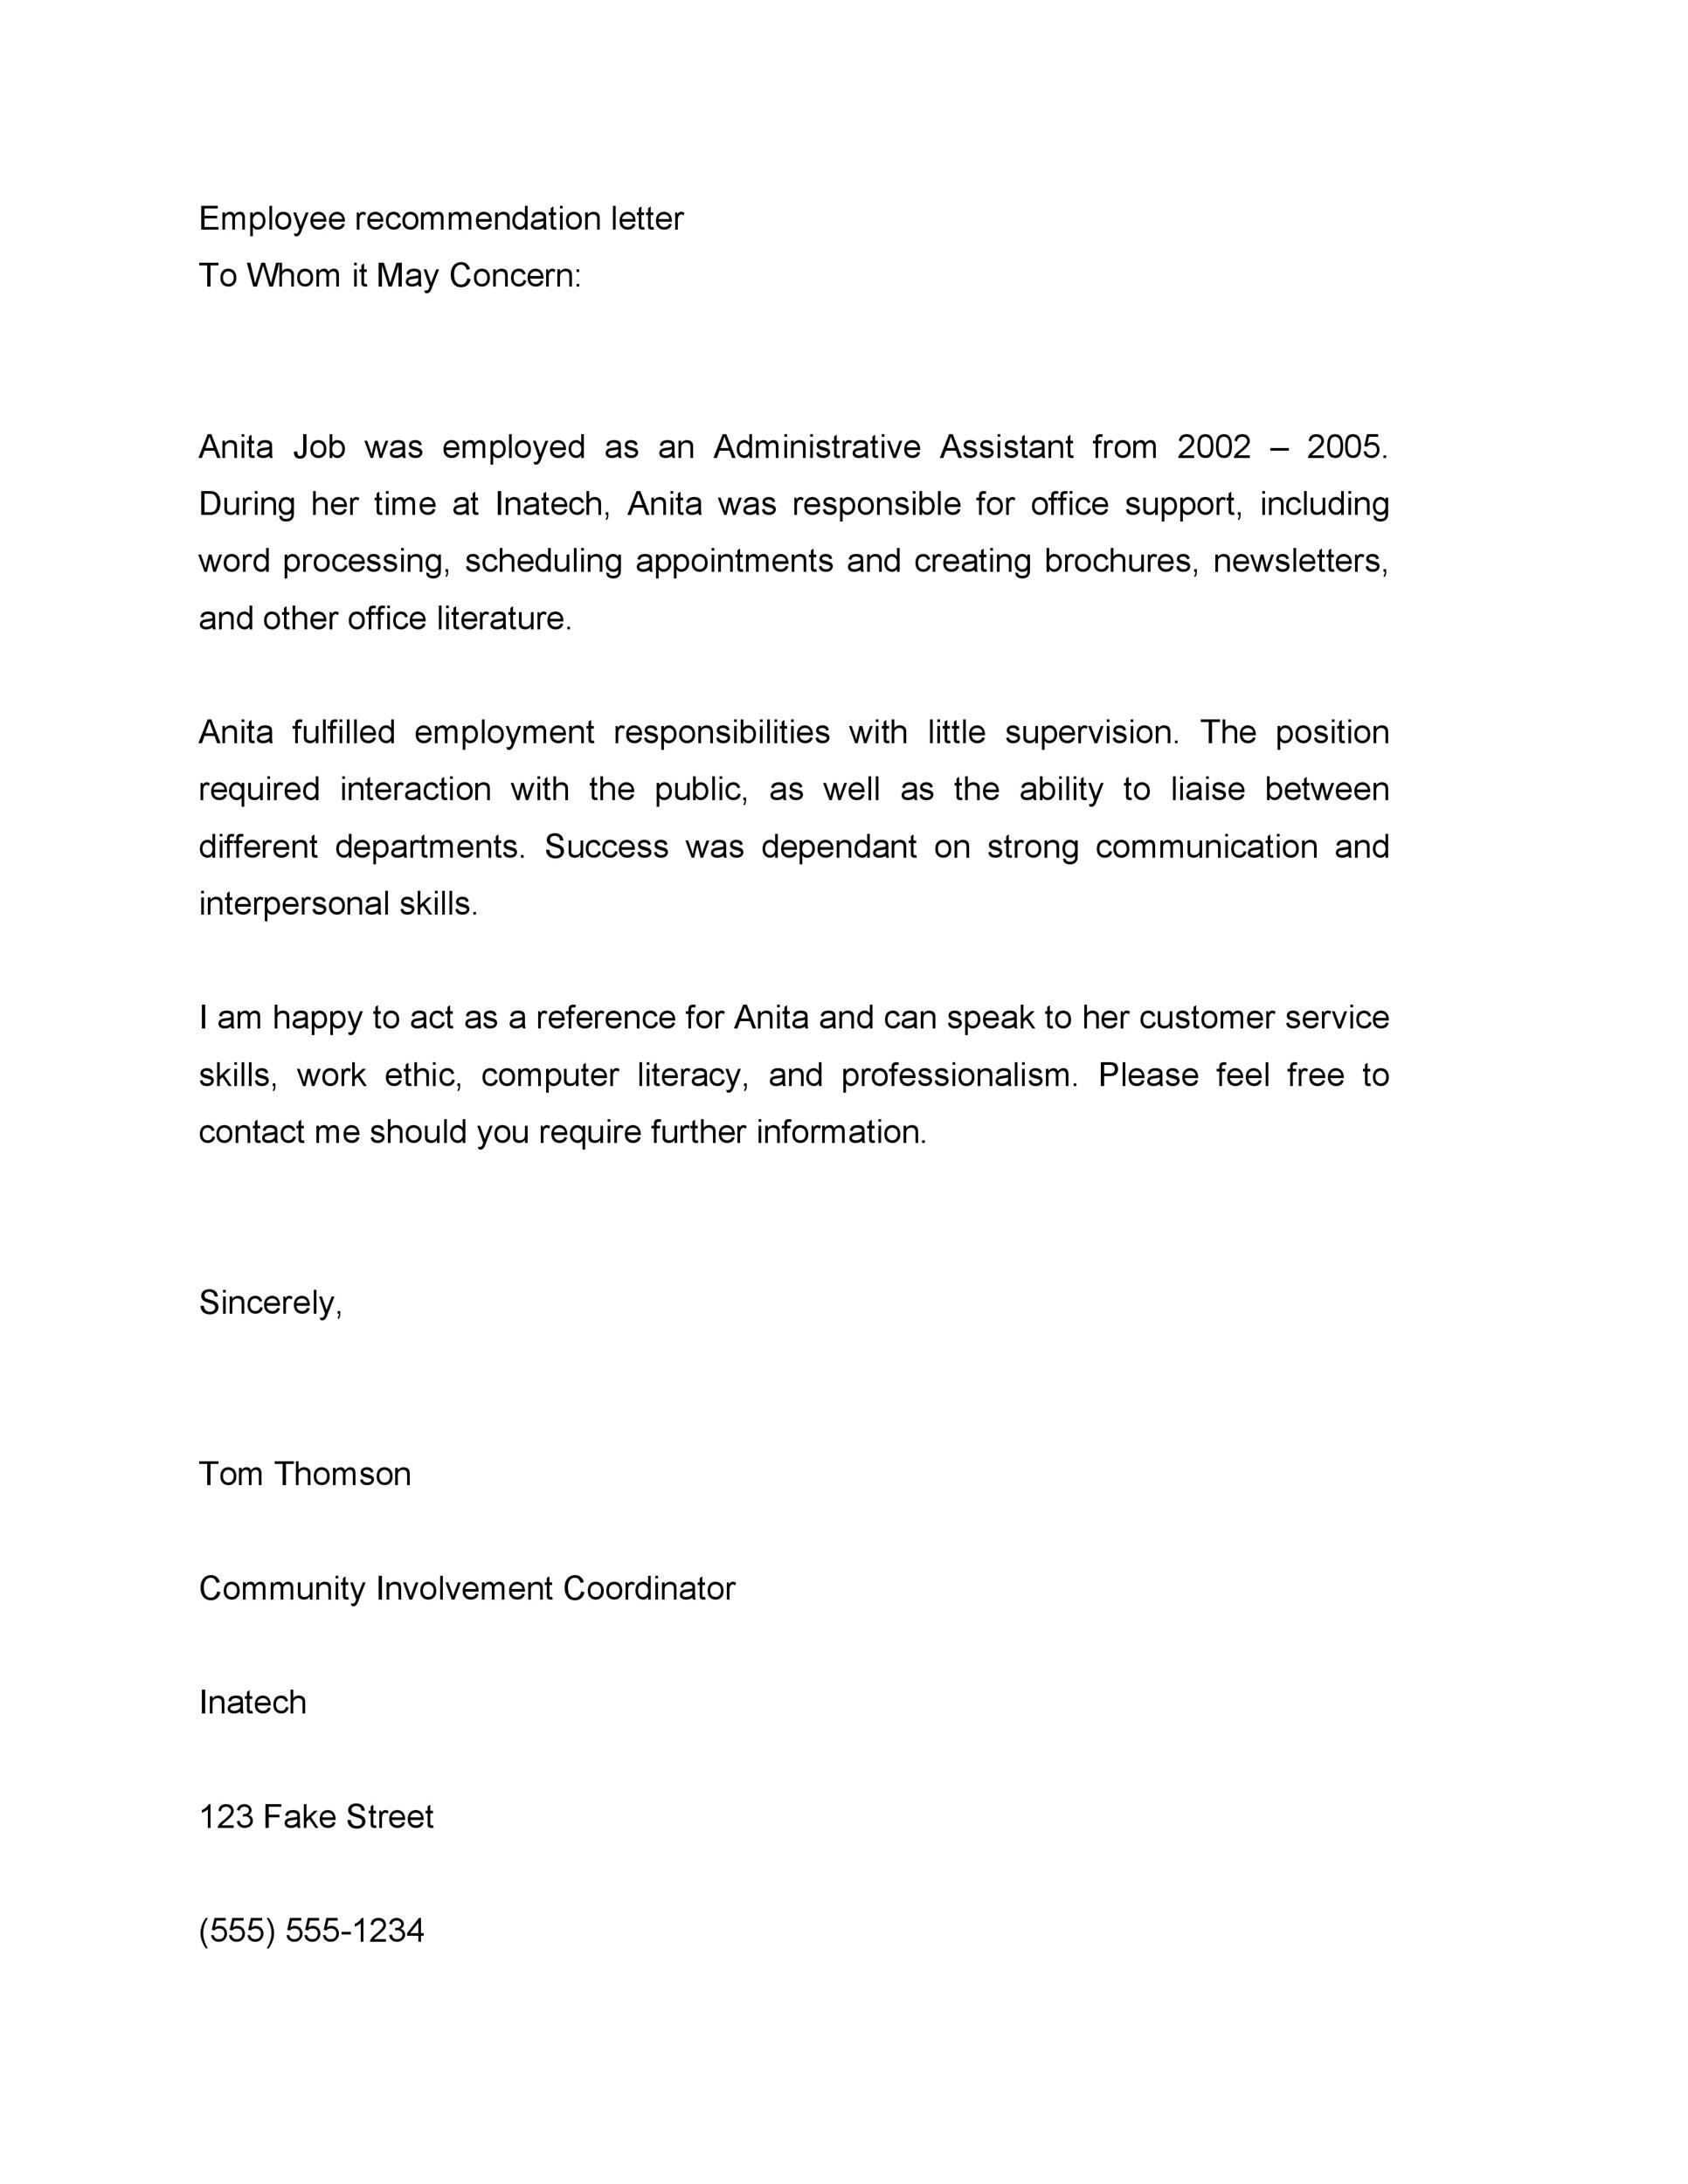 Letter Of Recommendation Sample For Former Employee from templatelab.com